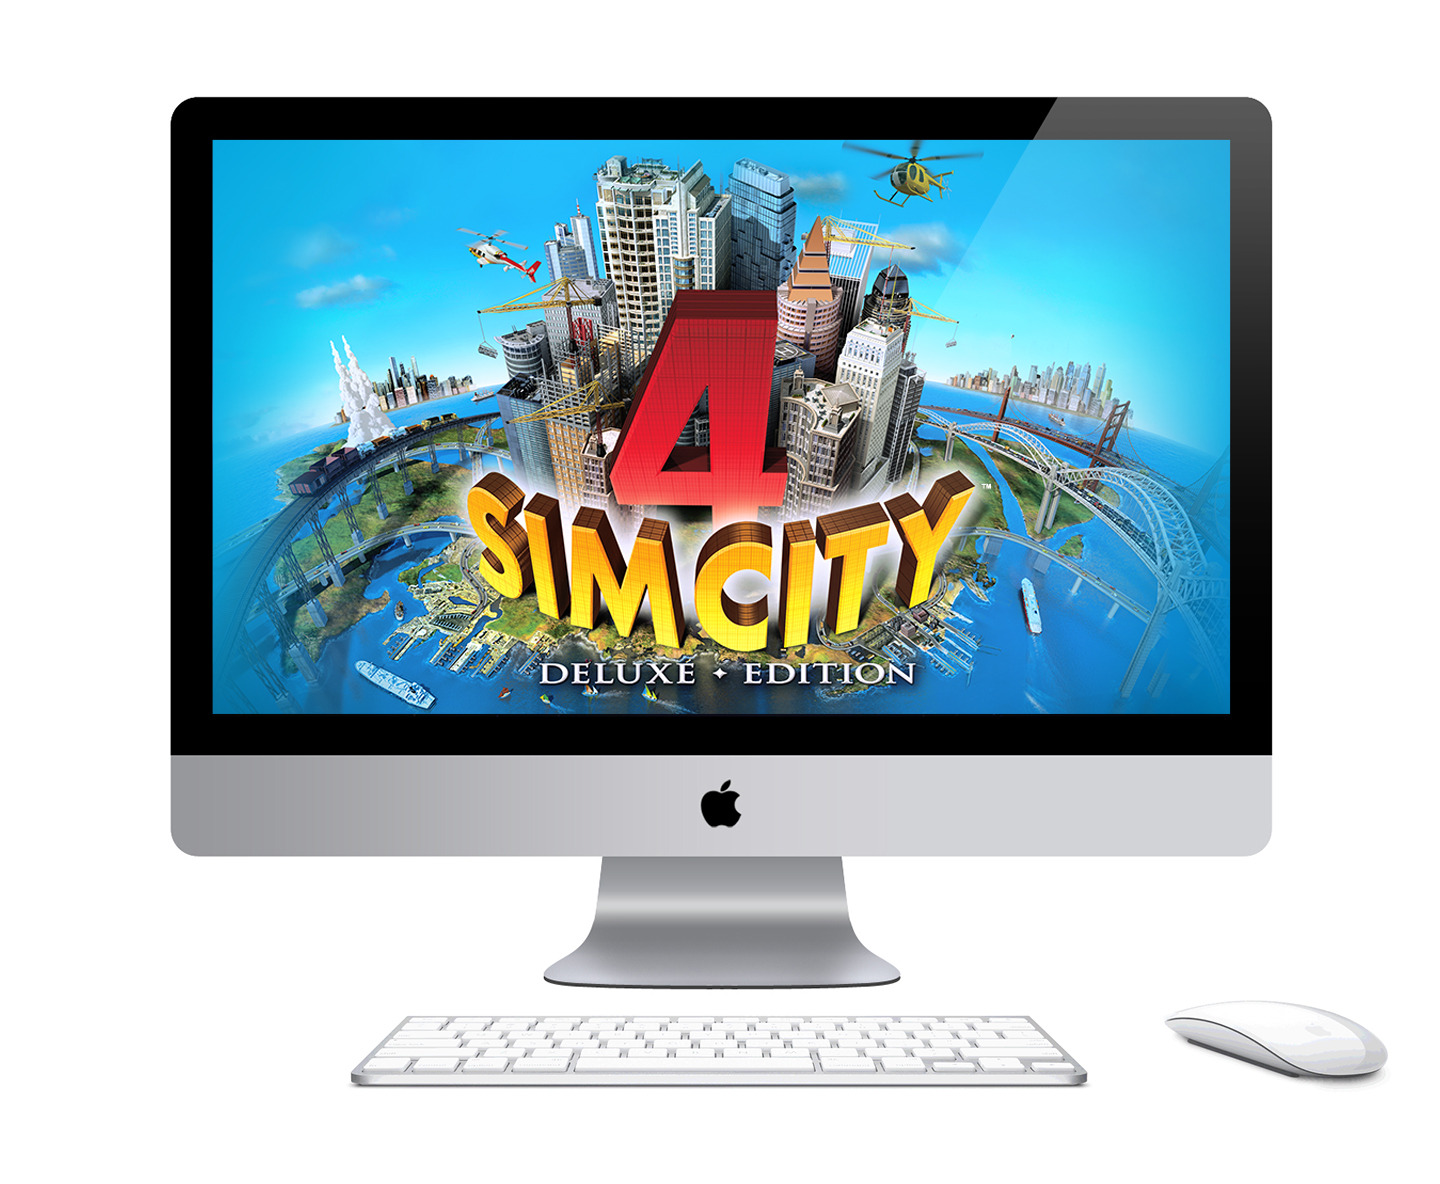 SimCity 4 Deluxe Edition re-released digitally via Mac App Store